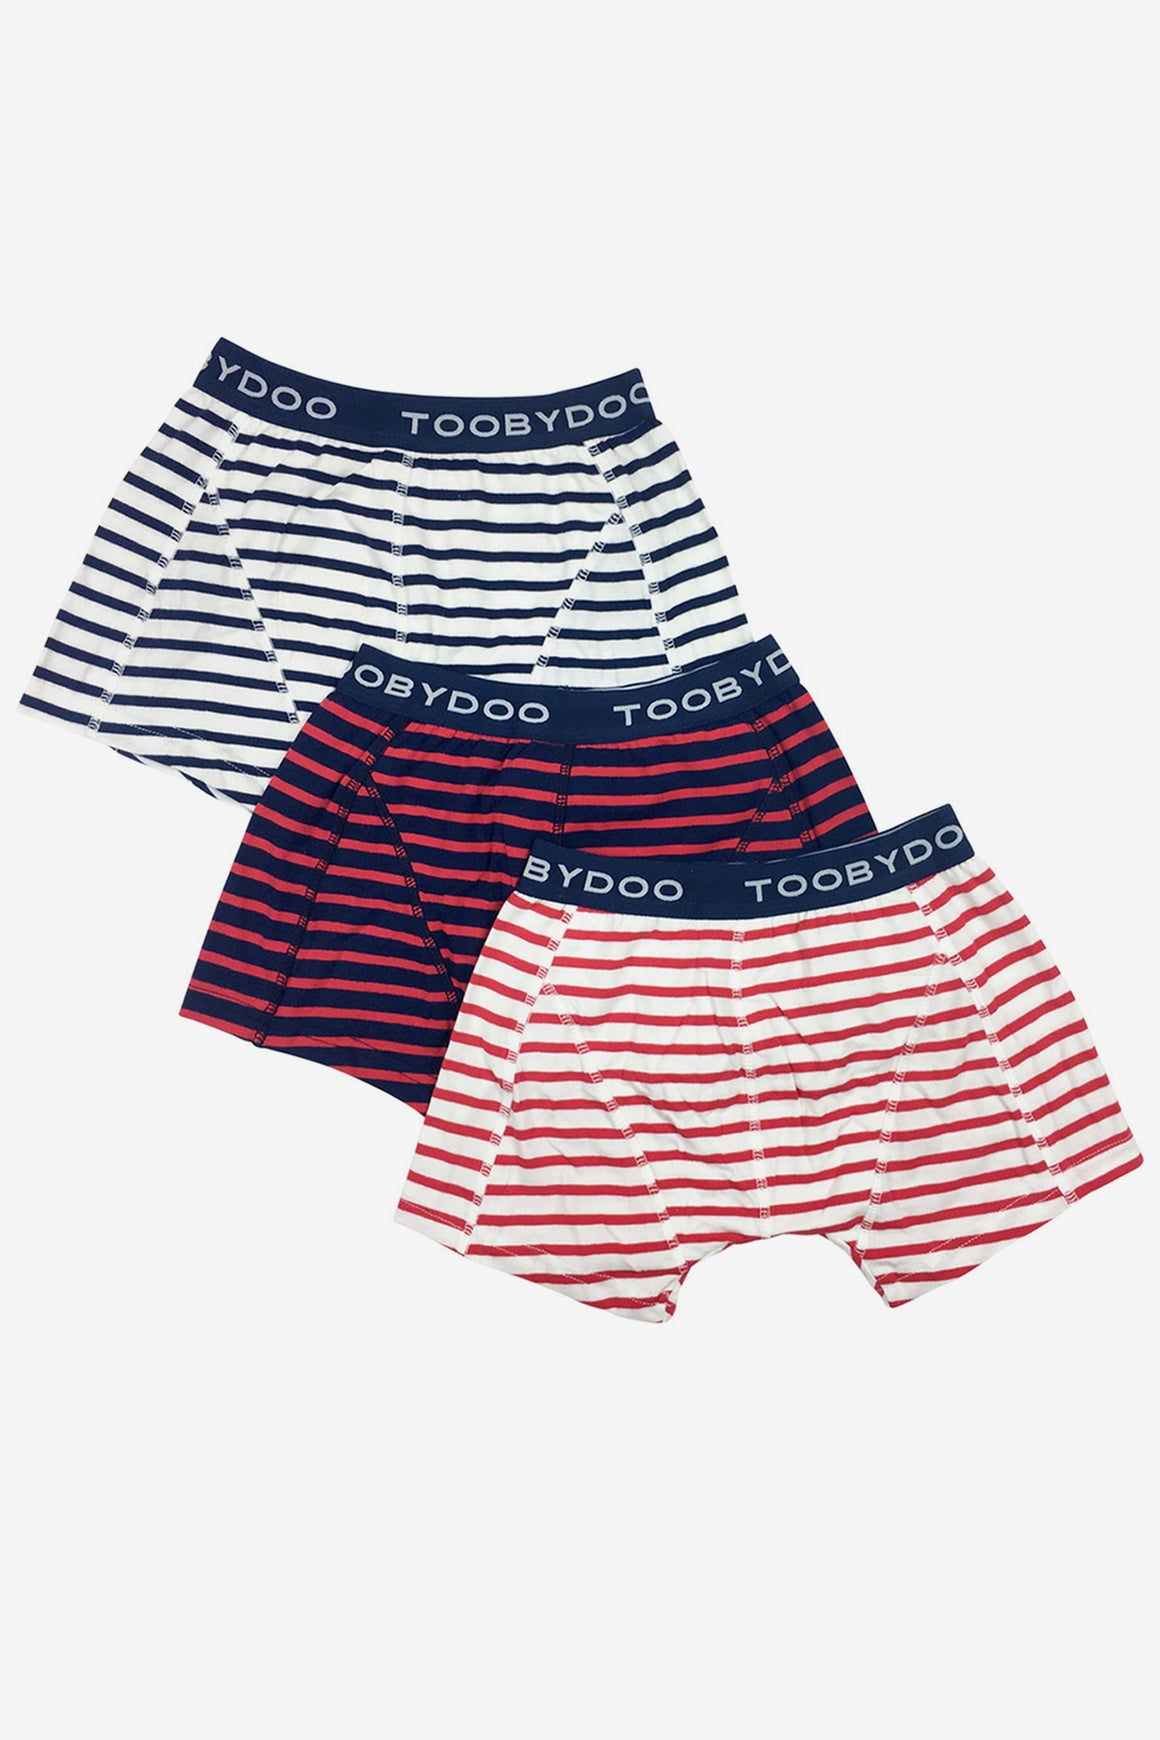 Toobydoo Boys Underwear 3-Pack - Red